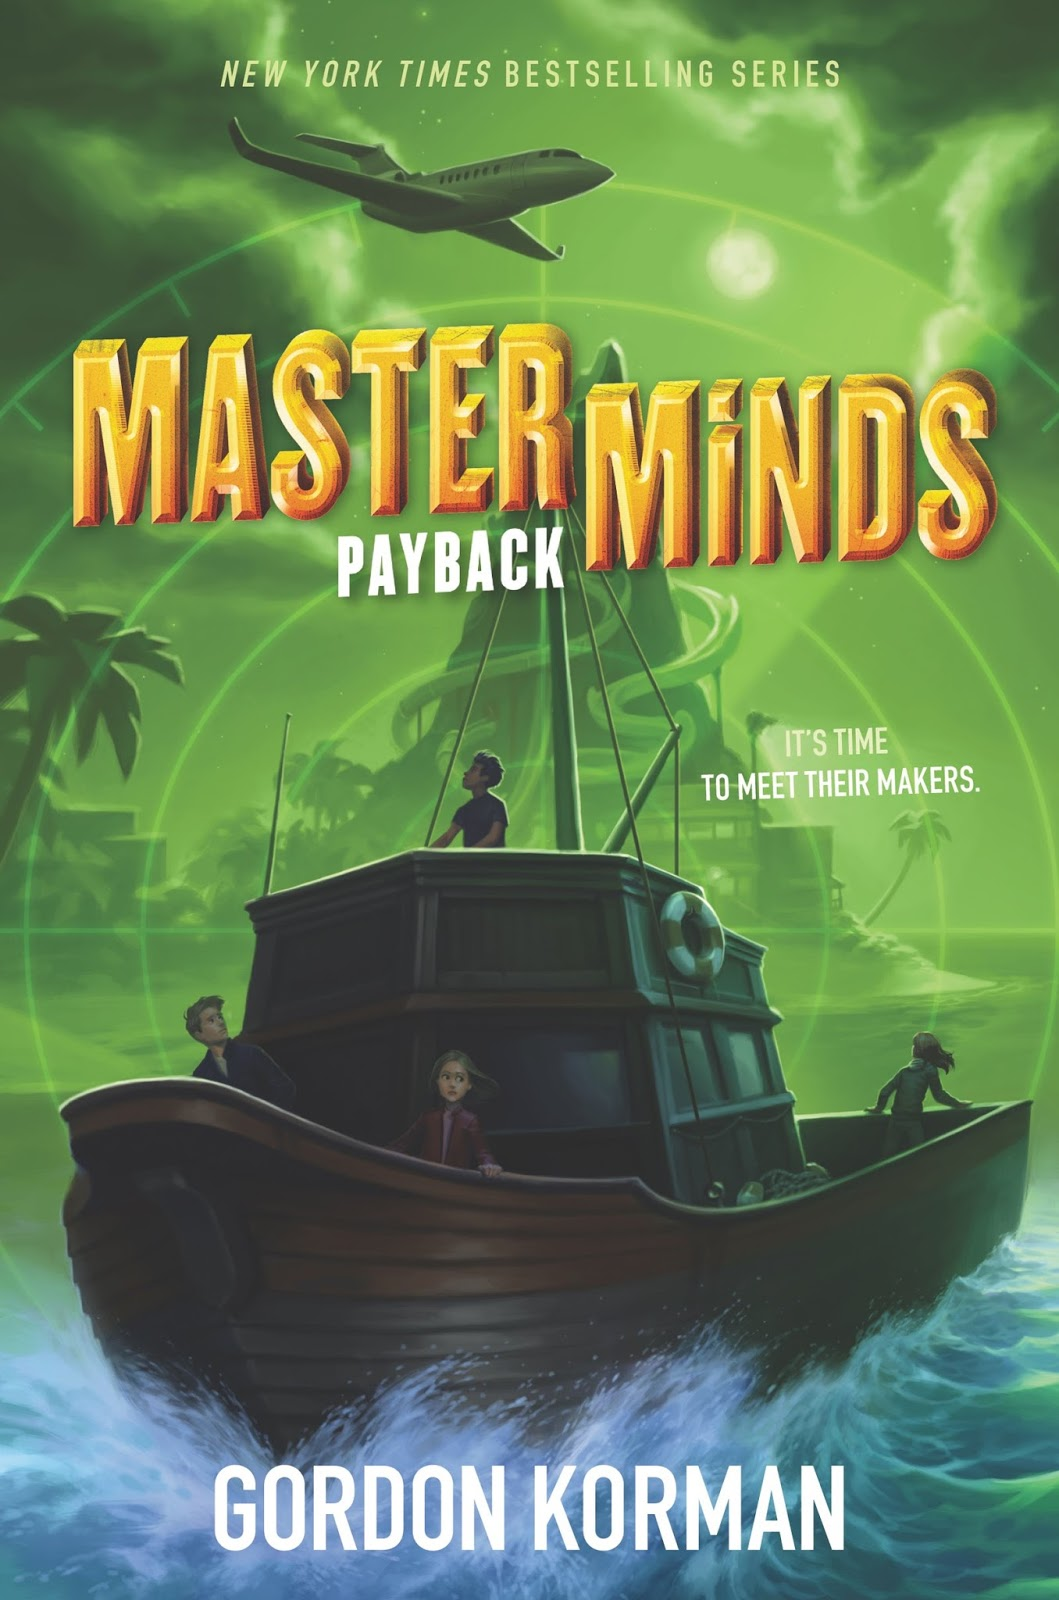 Gordon Korman  Masterminds: Payback  Published By Balzer + Bray (march 7,  2017) Isbn13: 9780062300058